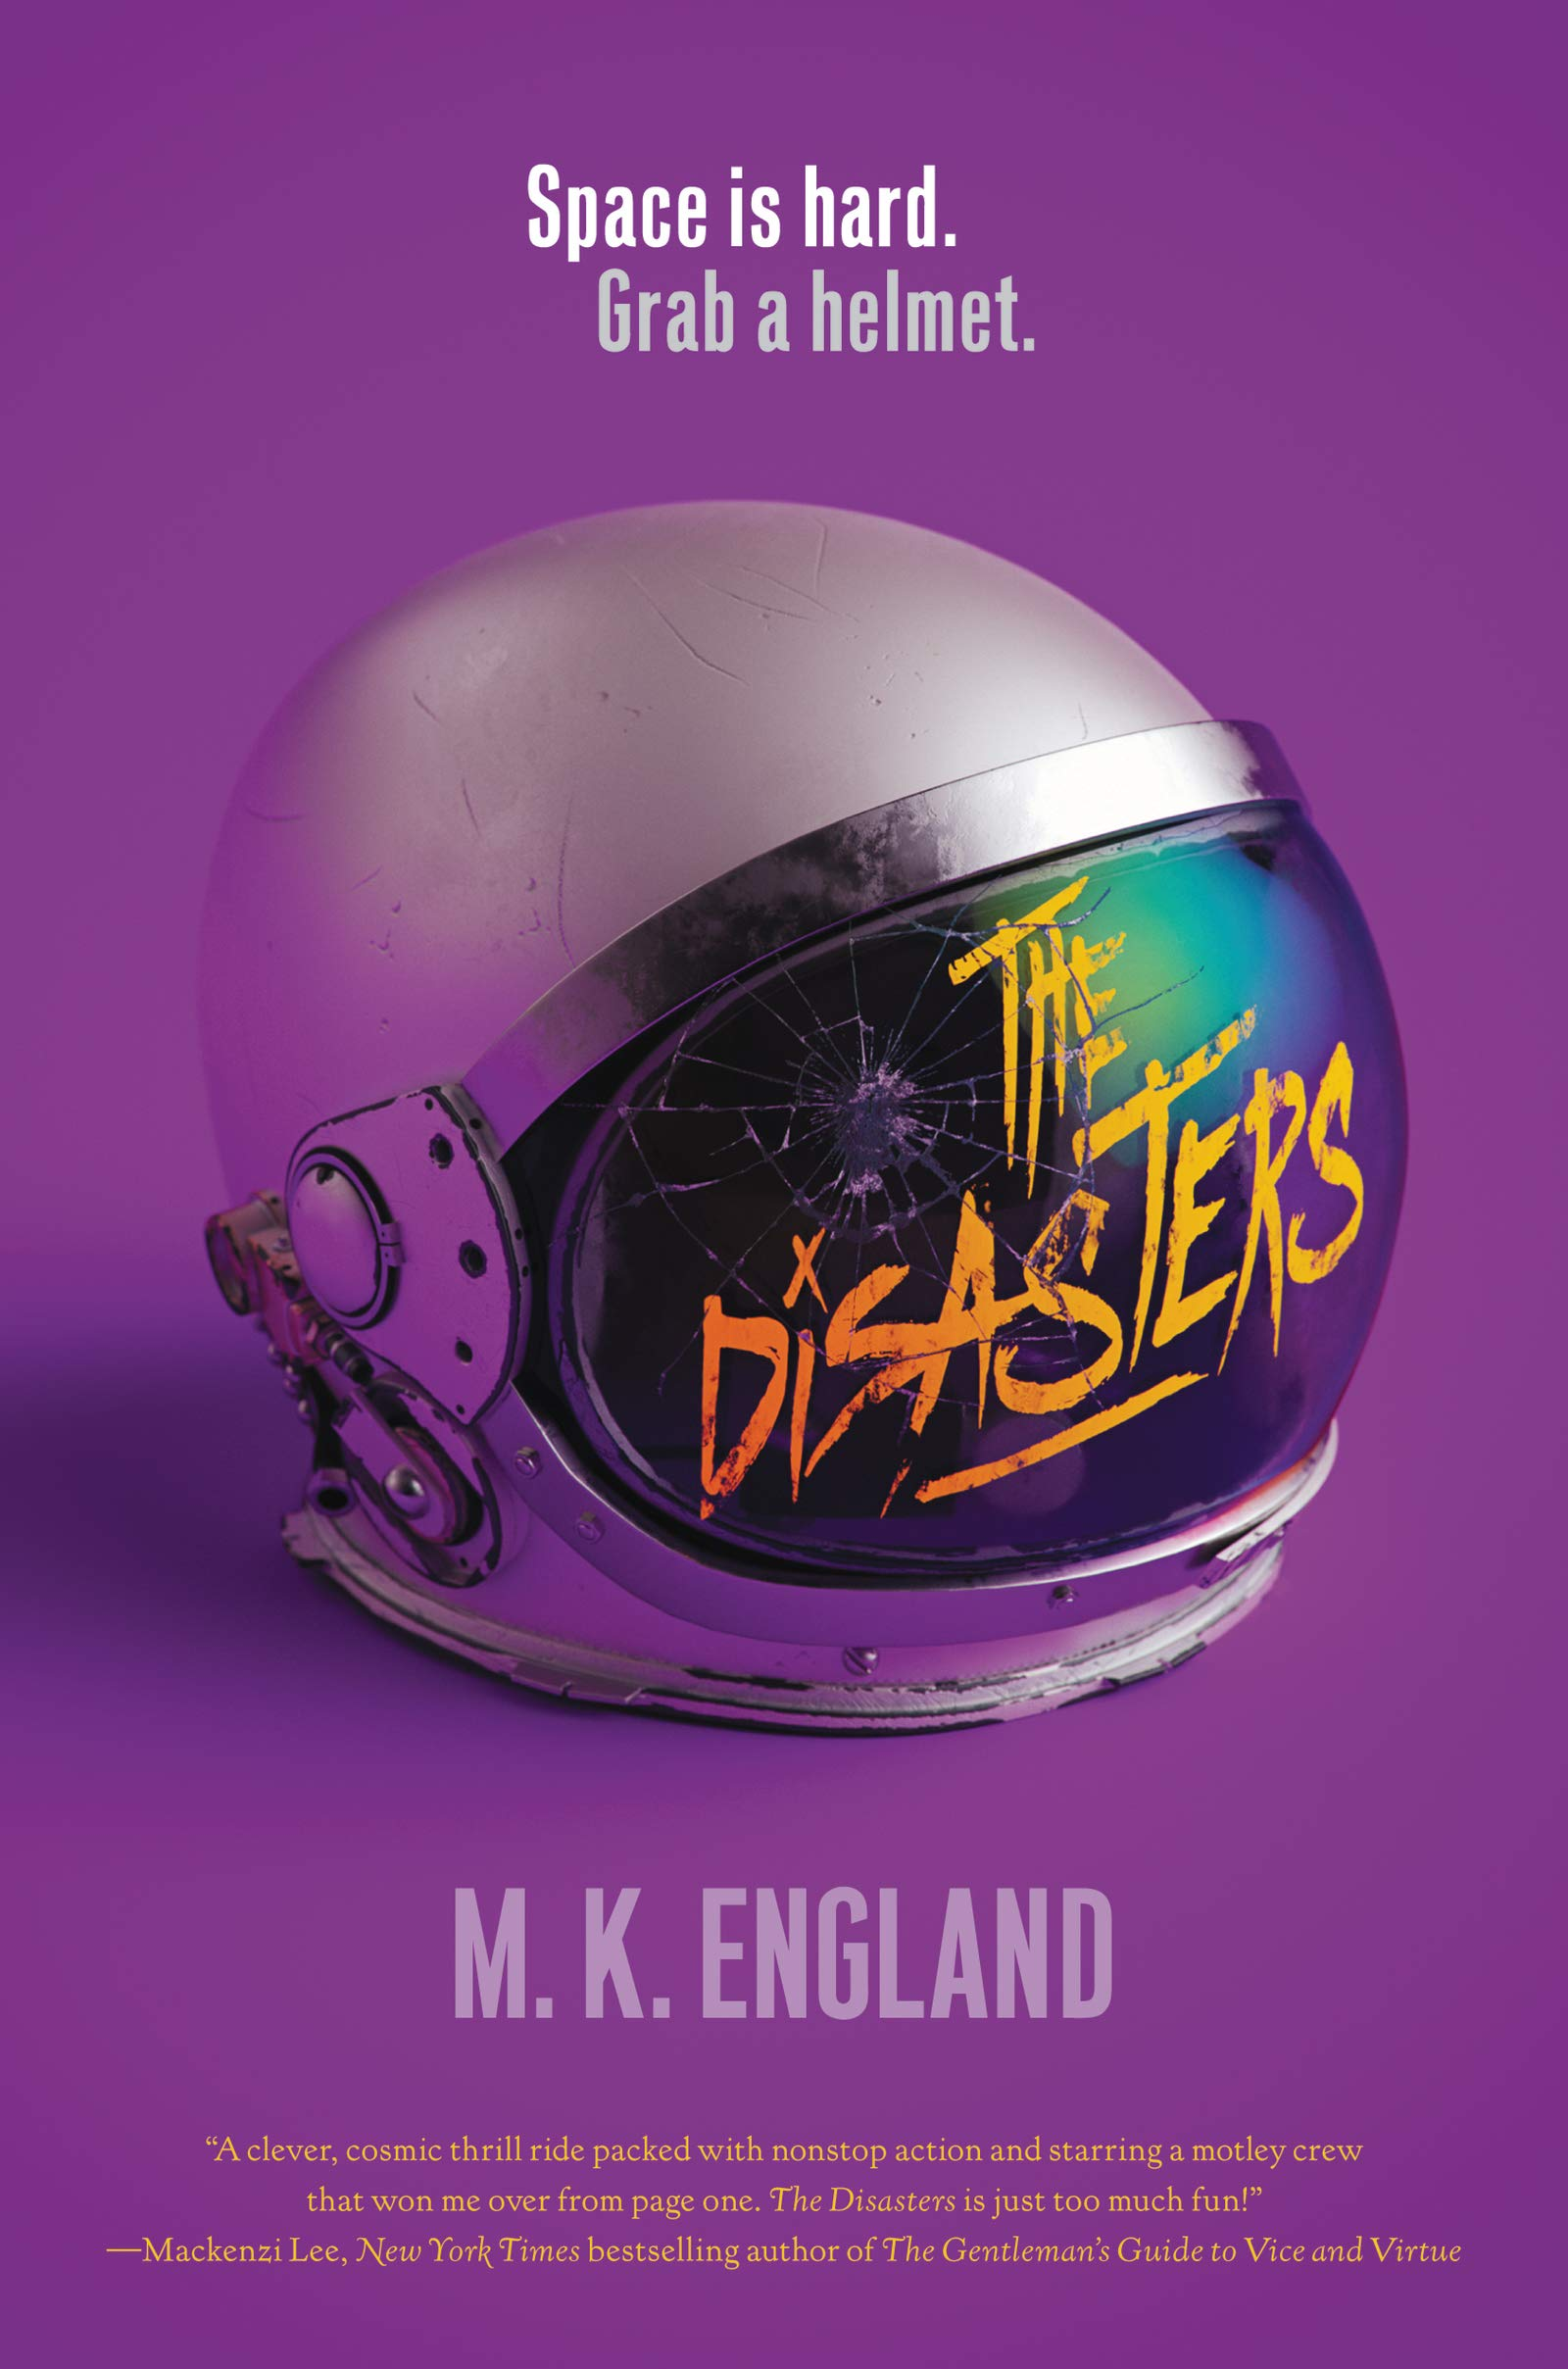 Amazon.com: The Disasters (9780062657671): England, M. K.: Books